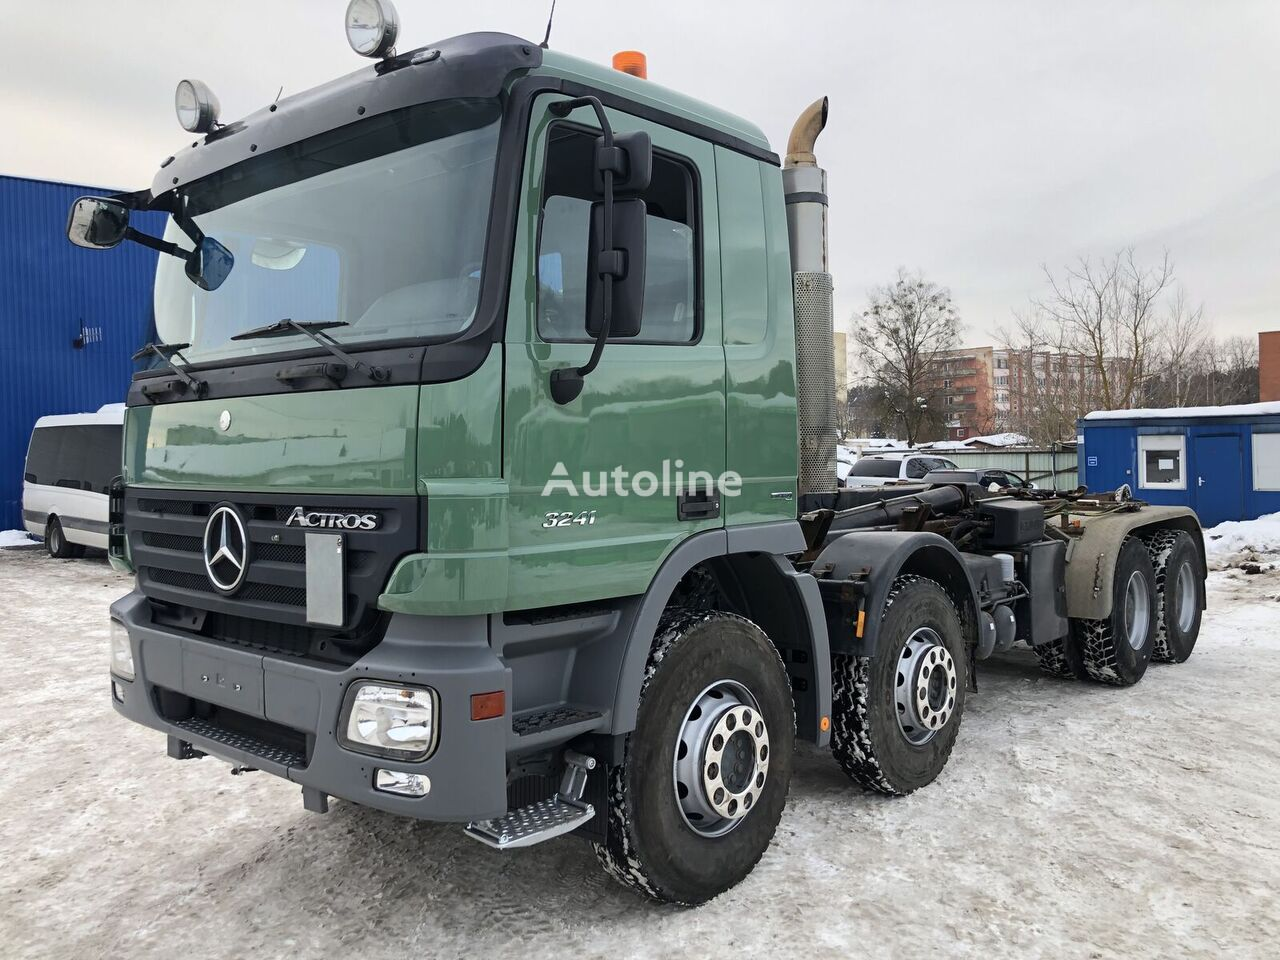 MERCEDES-BENZ Actros 3241 hook lift truck